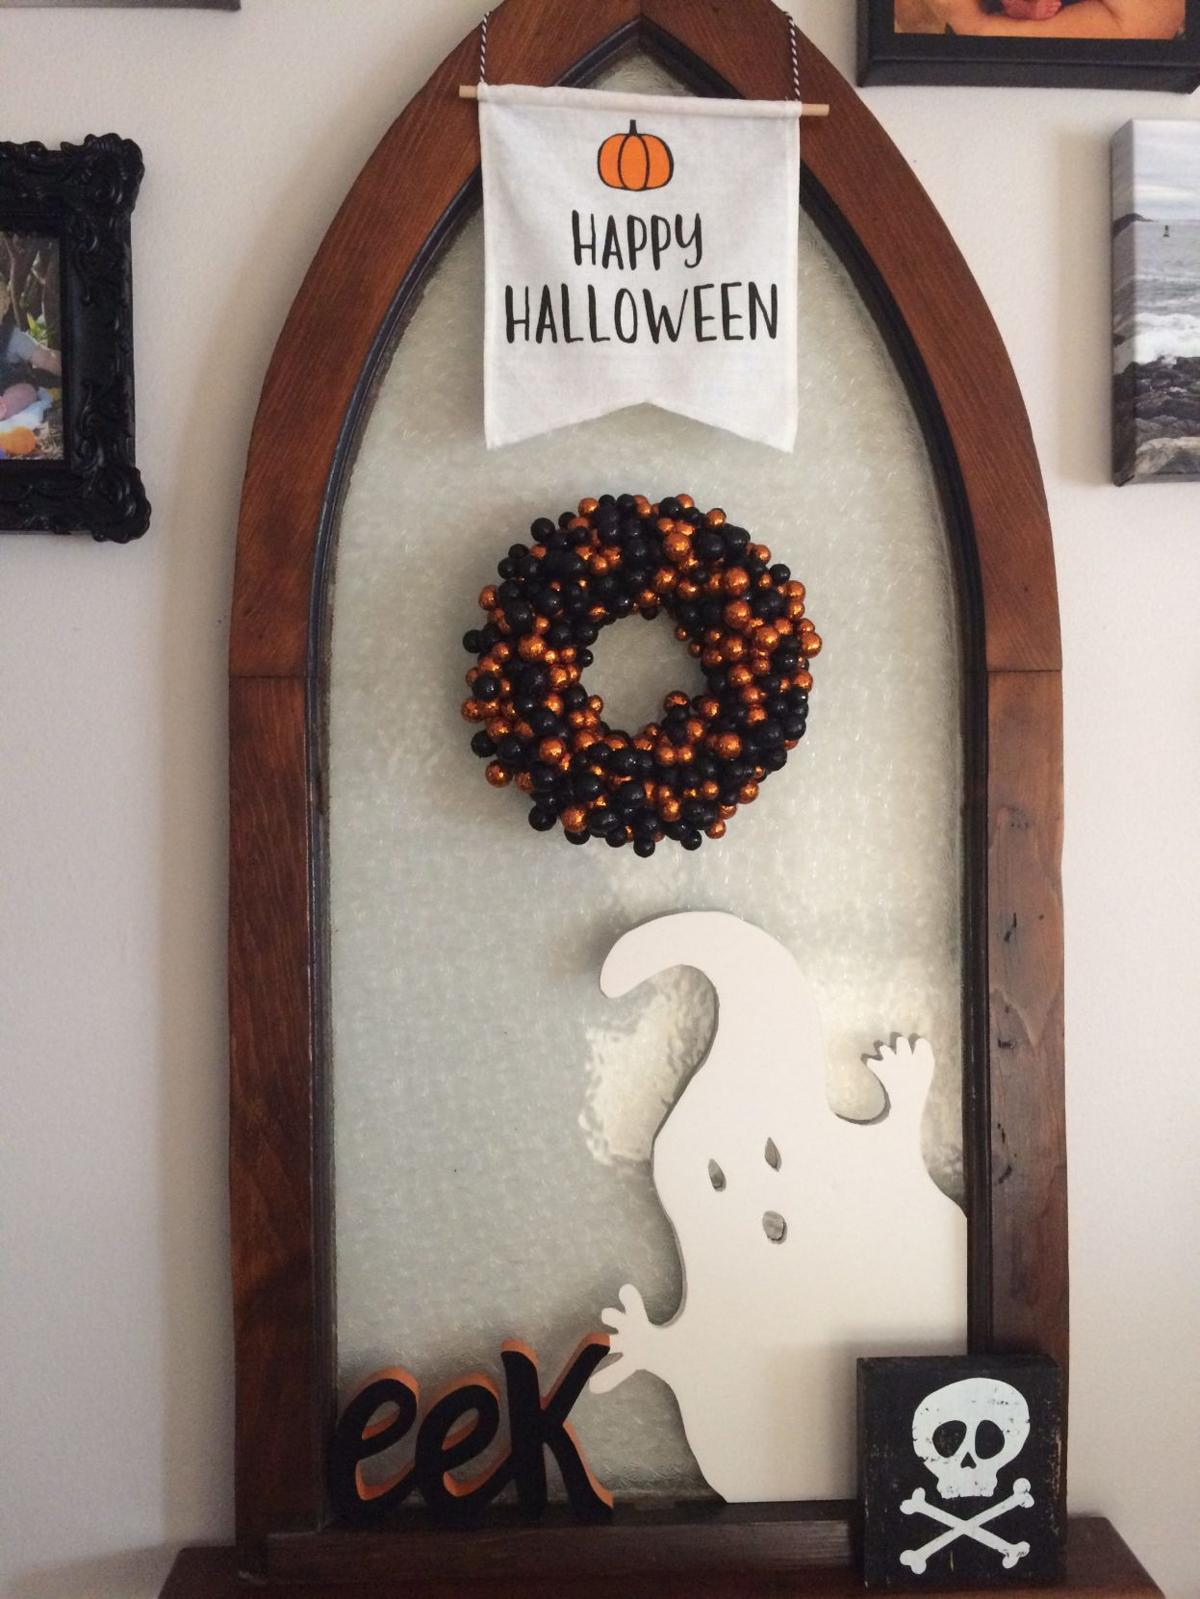 Do-it-yourself Halloween on a budget: Scare up some spooky décor that won't hurt candy-stash funds